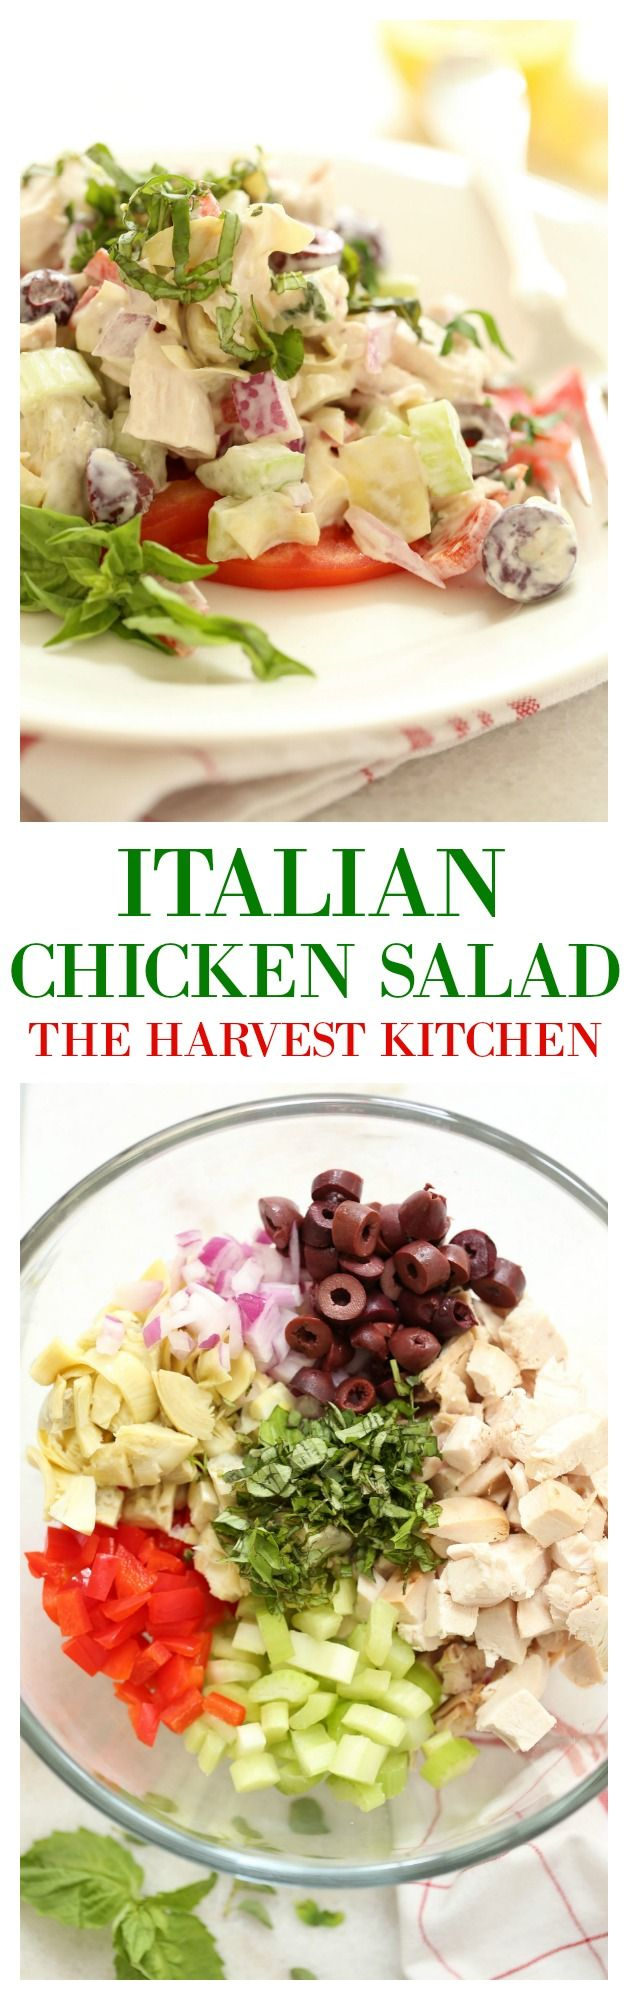 This Healthy Italian Chicken Salad has a slight Mediterranean twist. It's loaded with chunks of tender chicken breast, red bell pepper, red onion, kalamata olives, artichoke hearts, celery and fresh herbs (basil, oregano and parsley). @theharvestkitchen.com